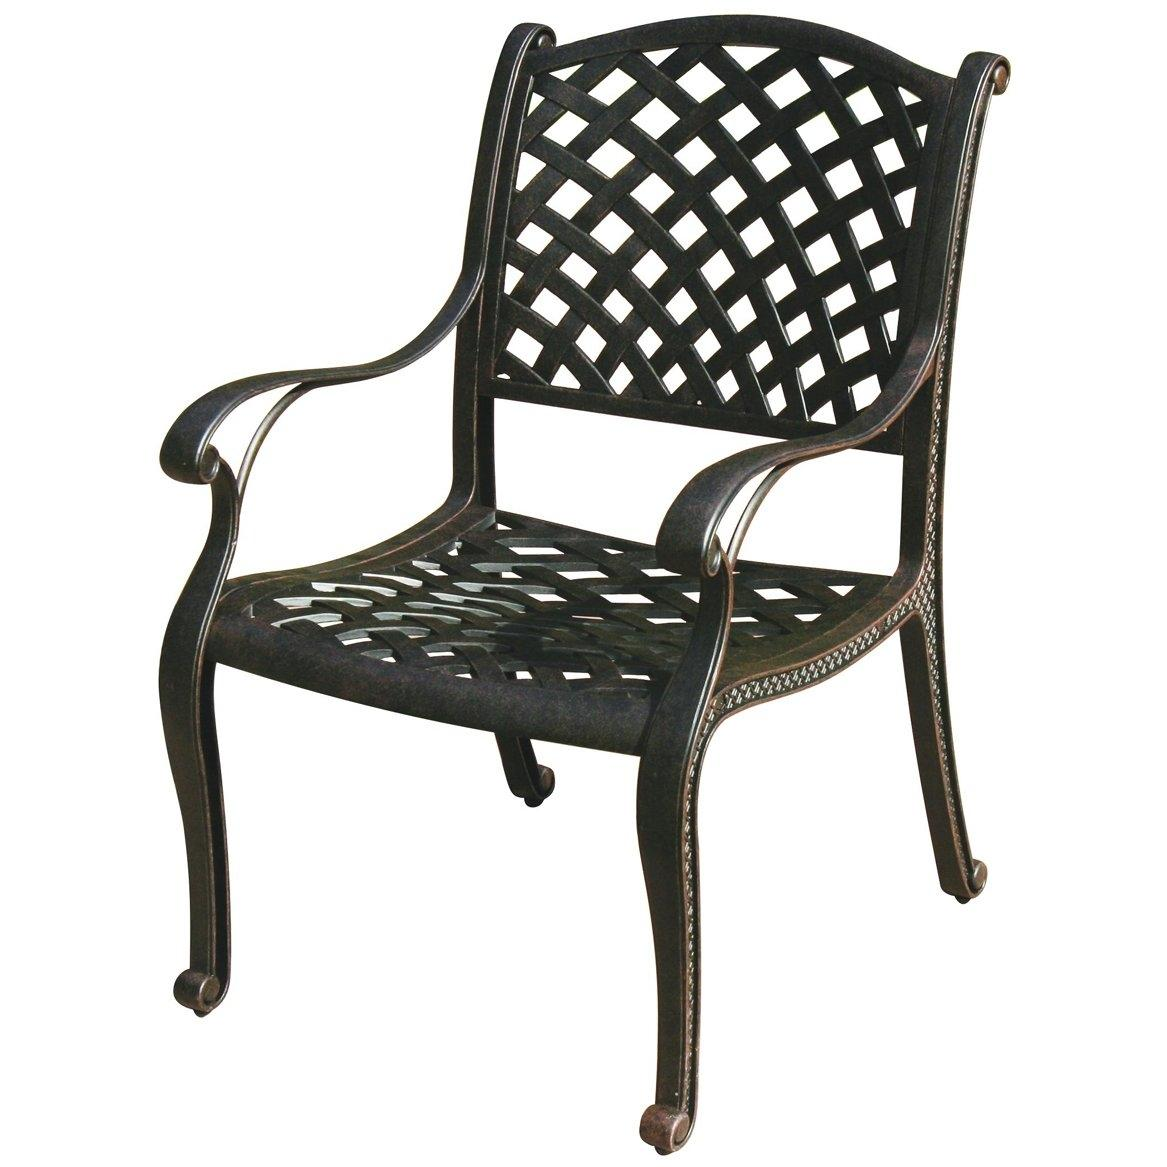 Darlee Nassau Cast Aluminum Outdoor Patio Dining Chair With Cushion - Antique Bronze